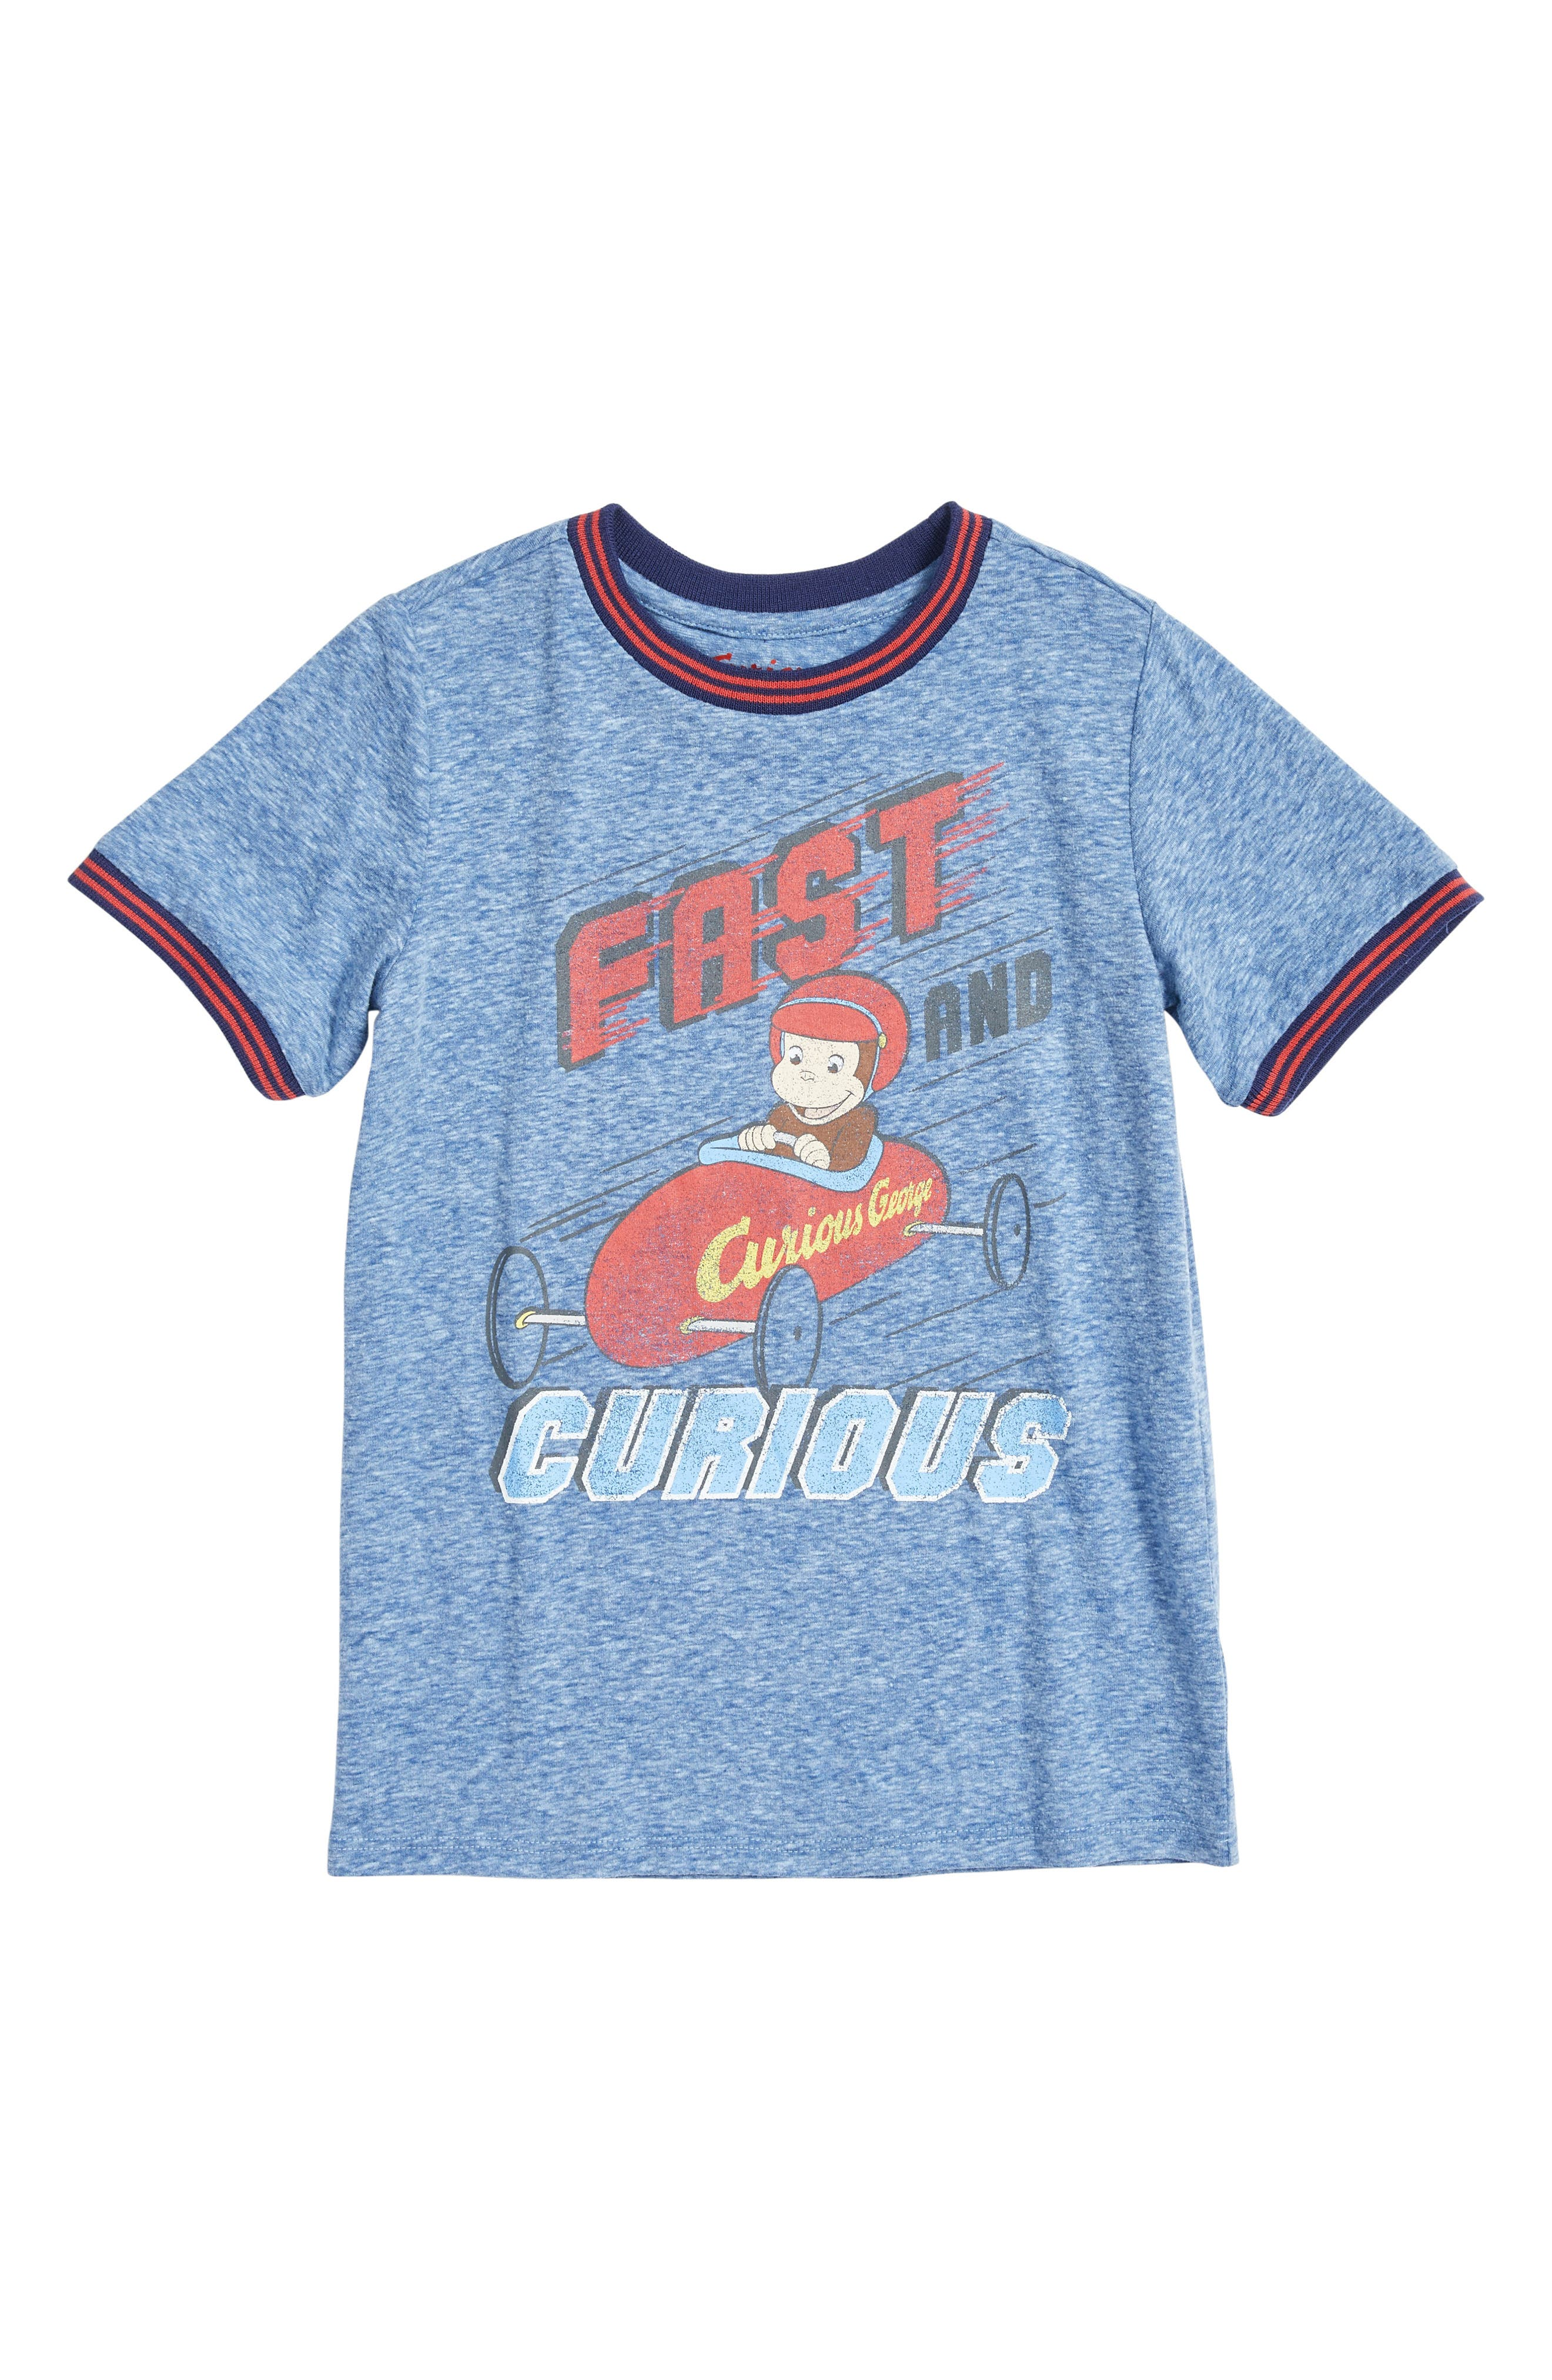 Main Image - Happy Threads Fast & Curious George Graphic T-Shirt (Toddler Boys & Little Boys)